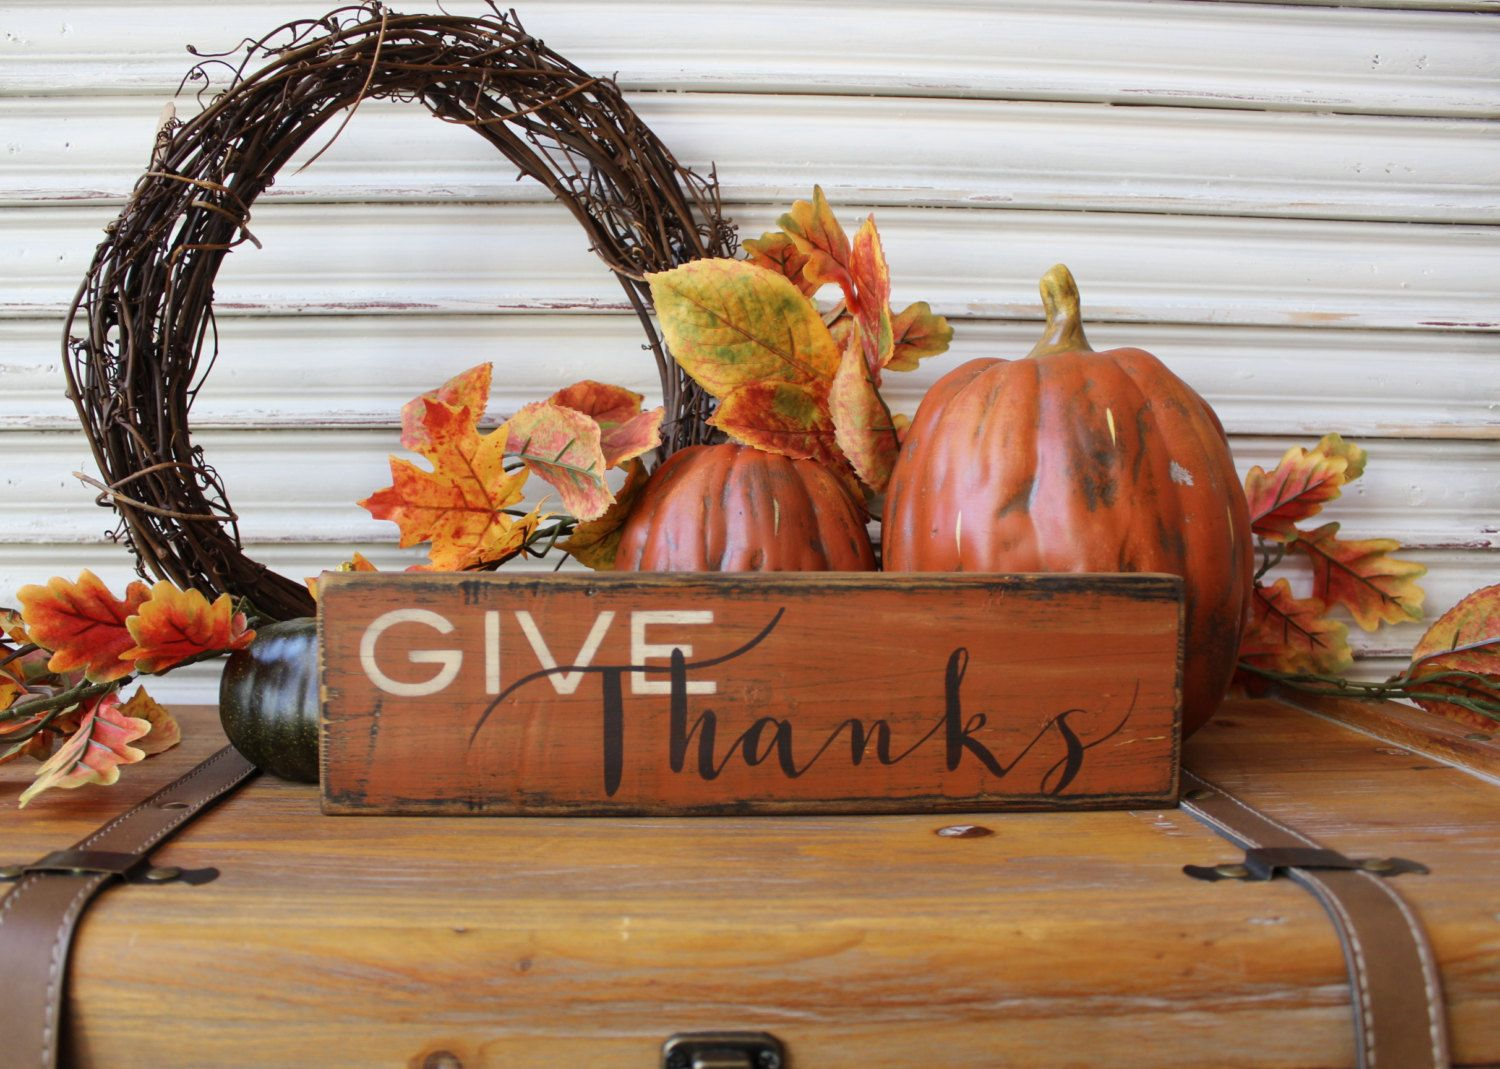 Fall Wood Sign, Give Thanks Wood Sign, Thanksgiving Sign, Fall Decor, Hanging Wood Sign, Rustic Wood Sign, Autumn Decor,Distressed Wood Sign by TinSheepShop on Etsy